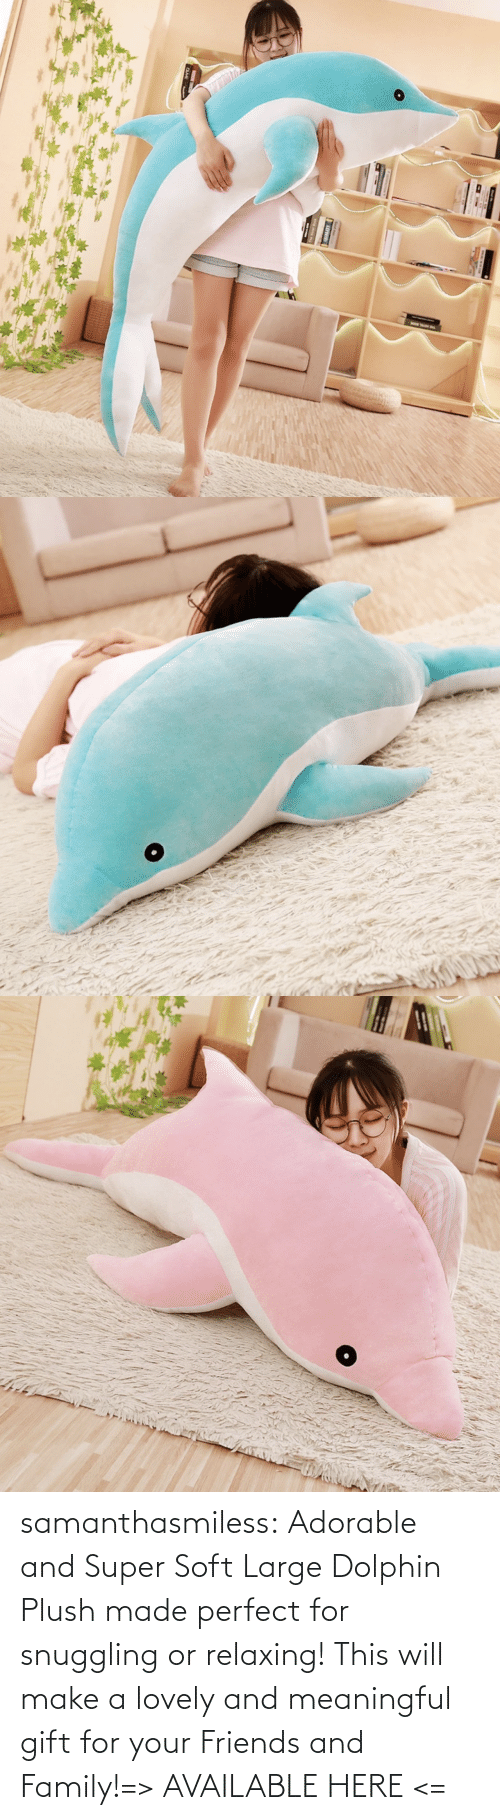 relaxing: samanthasmiless:  Adorable and Super Soft Large Dolphin Plush made perfect for snuggling or relaxing! This will make a lovely and meaningful gift for your Friends and Family!=> AVAILABLE HERE <=